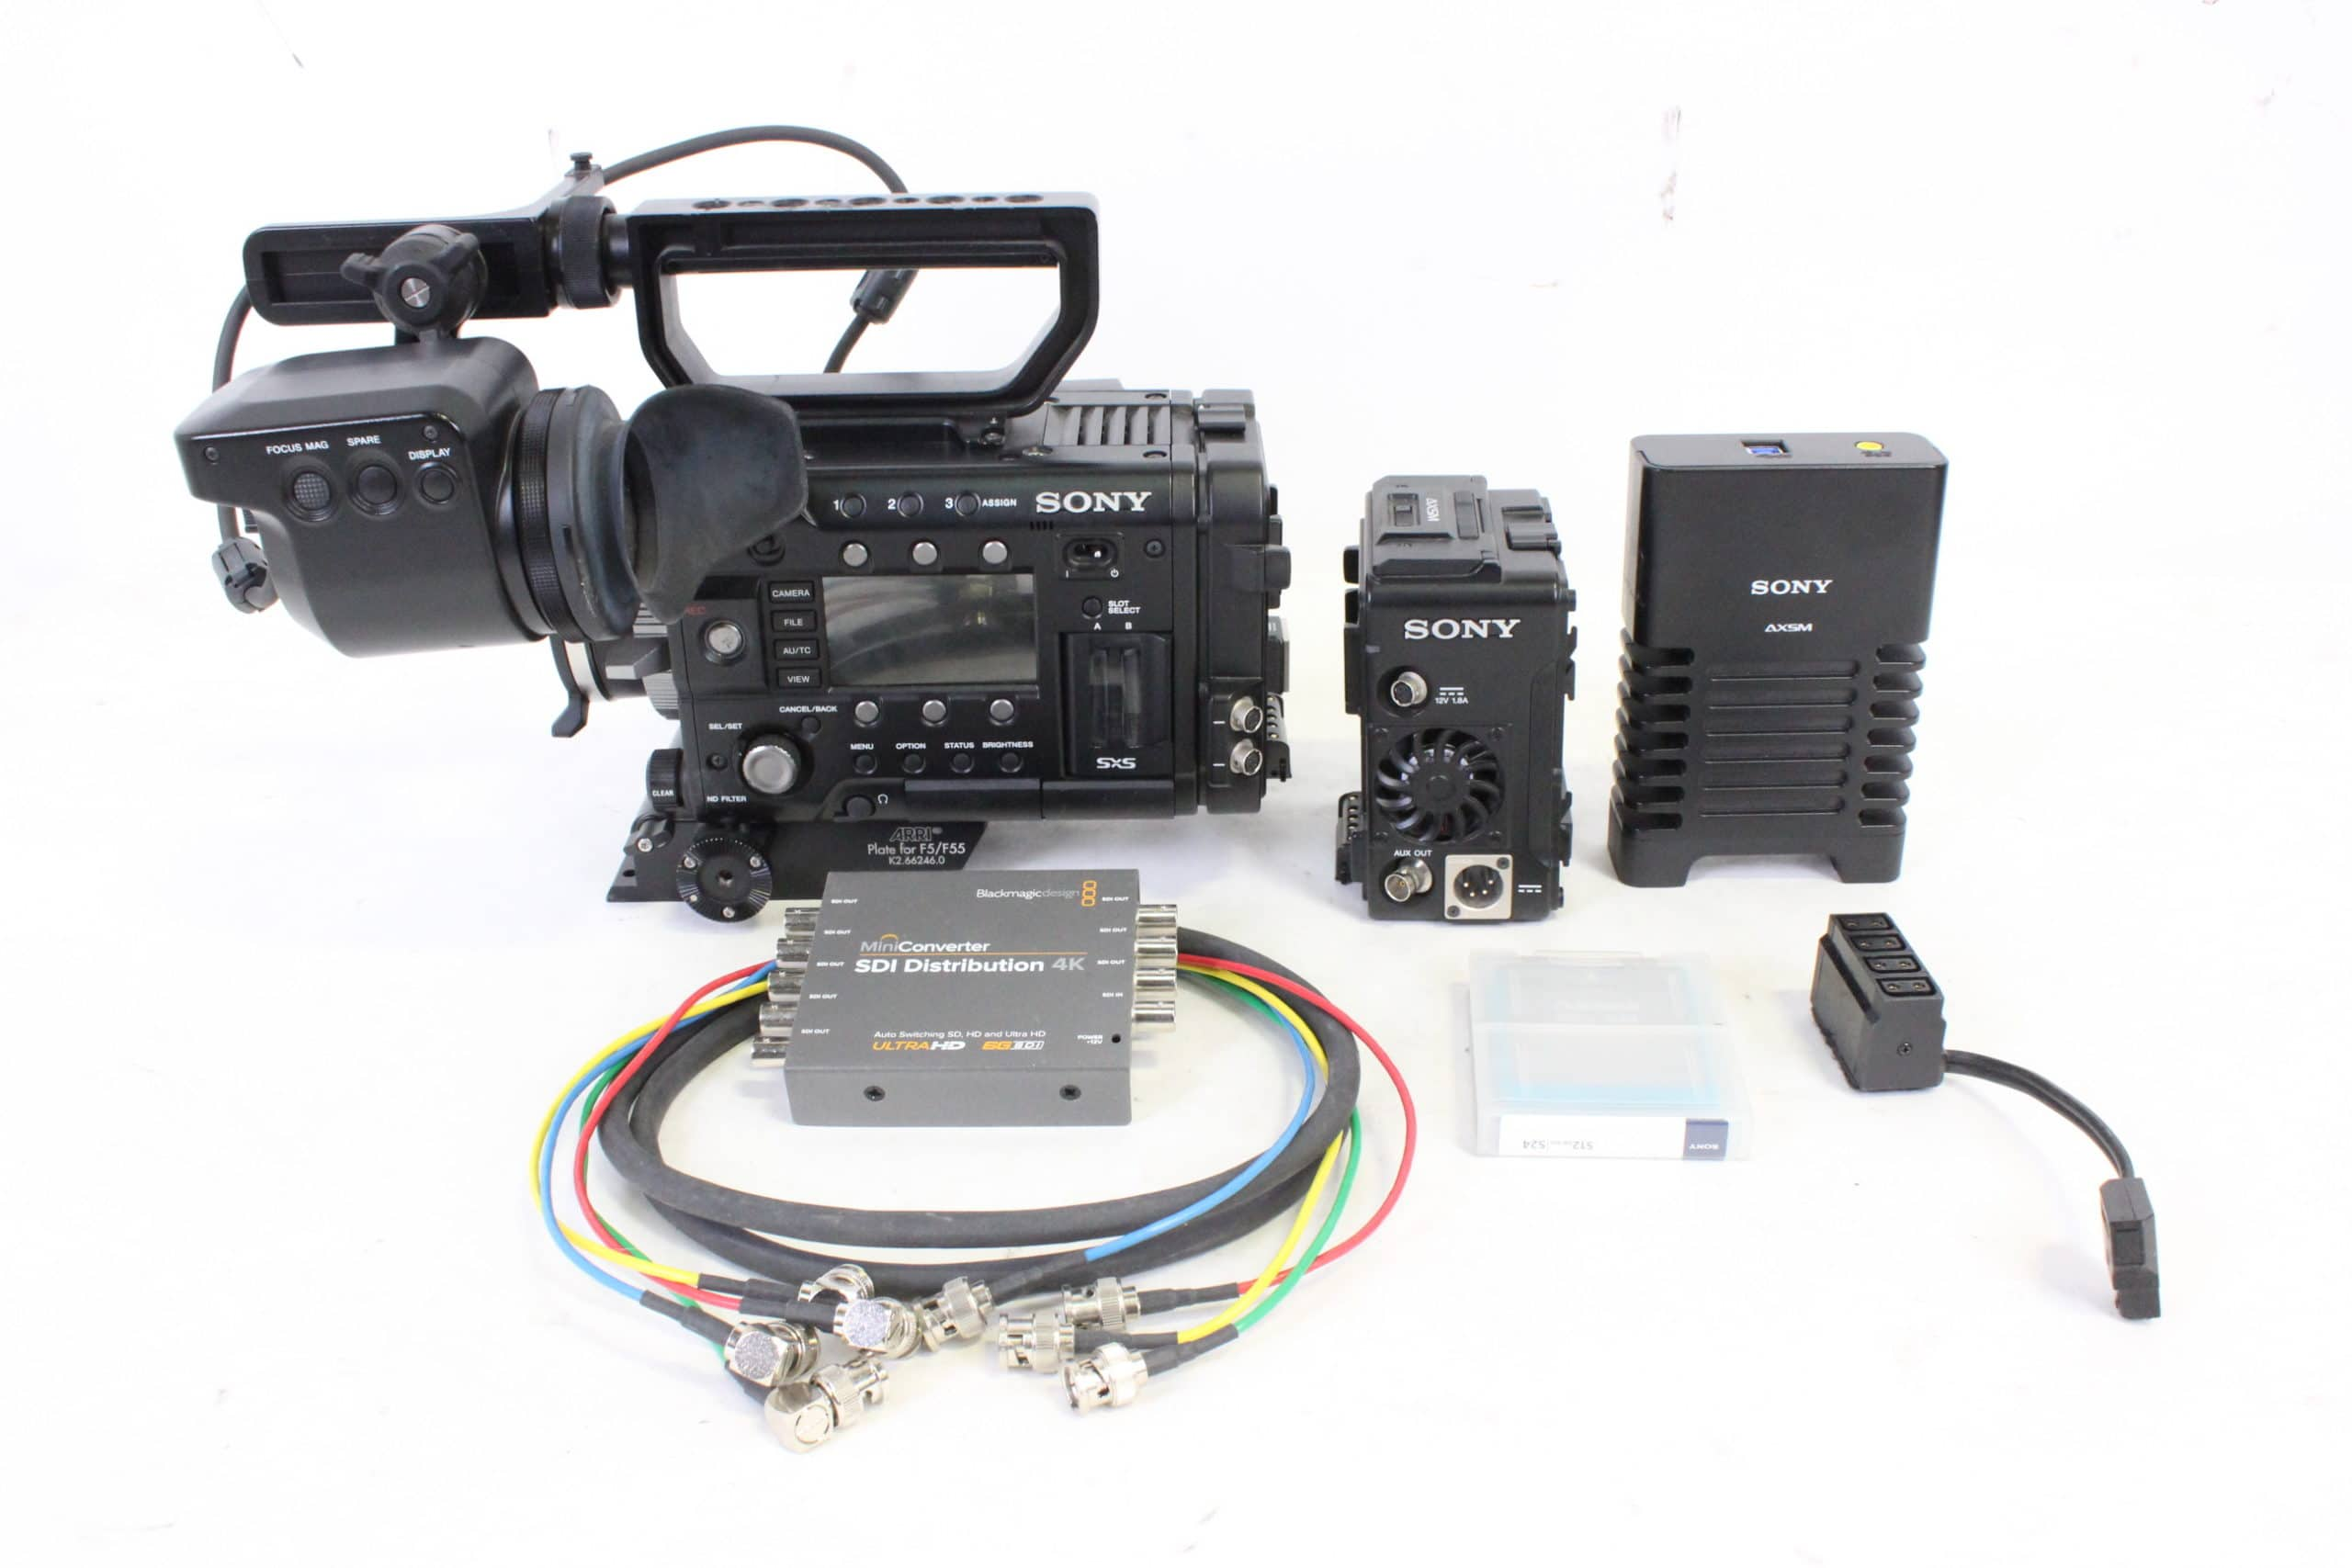 Sony PMW-F55 Solid State Memory Camcorder Kit w/ Sony DVF-EL100 Viewfinder / AXS-R5 Recorder / AXS-CR1 Reader & Blackmagic SDI Distribution 4K w/ Custom Case main